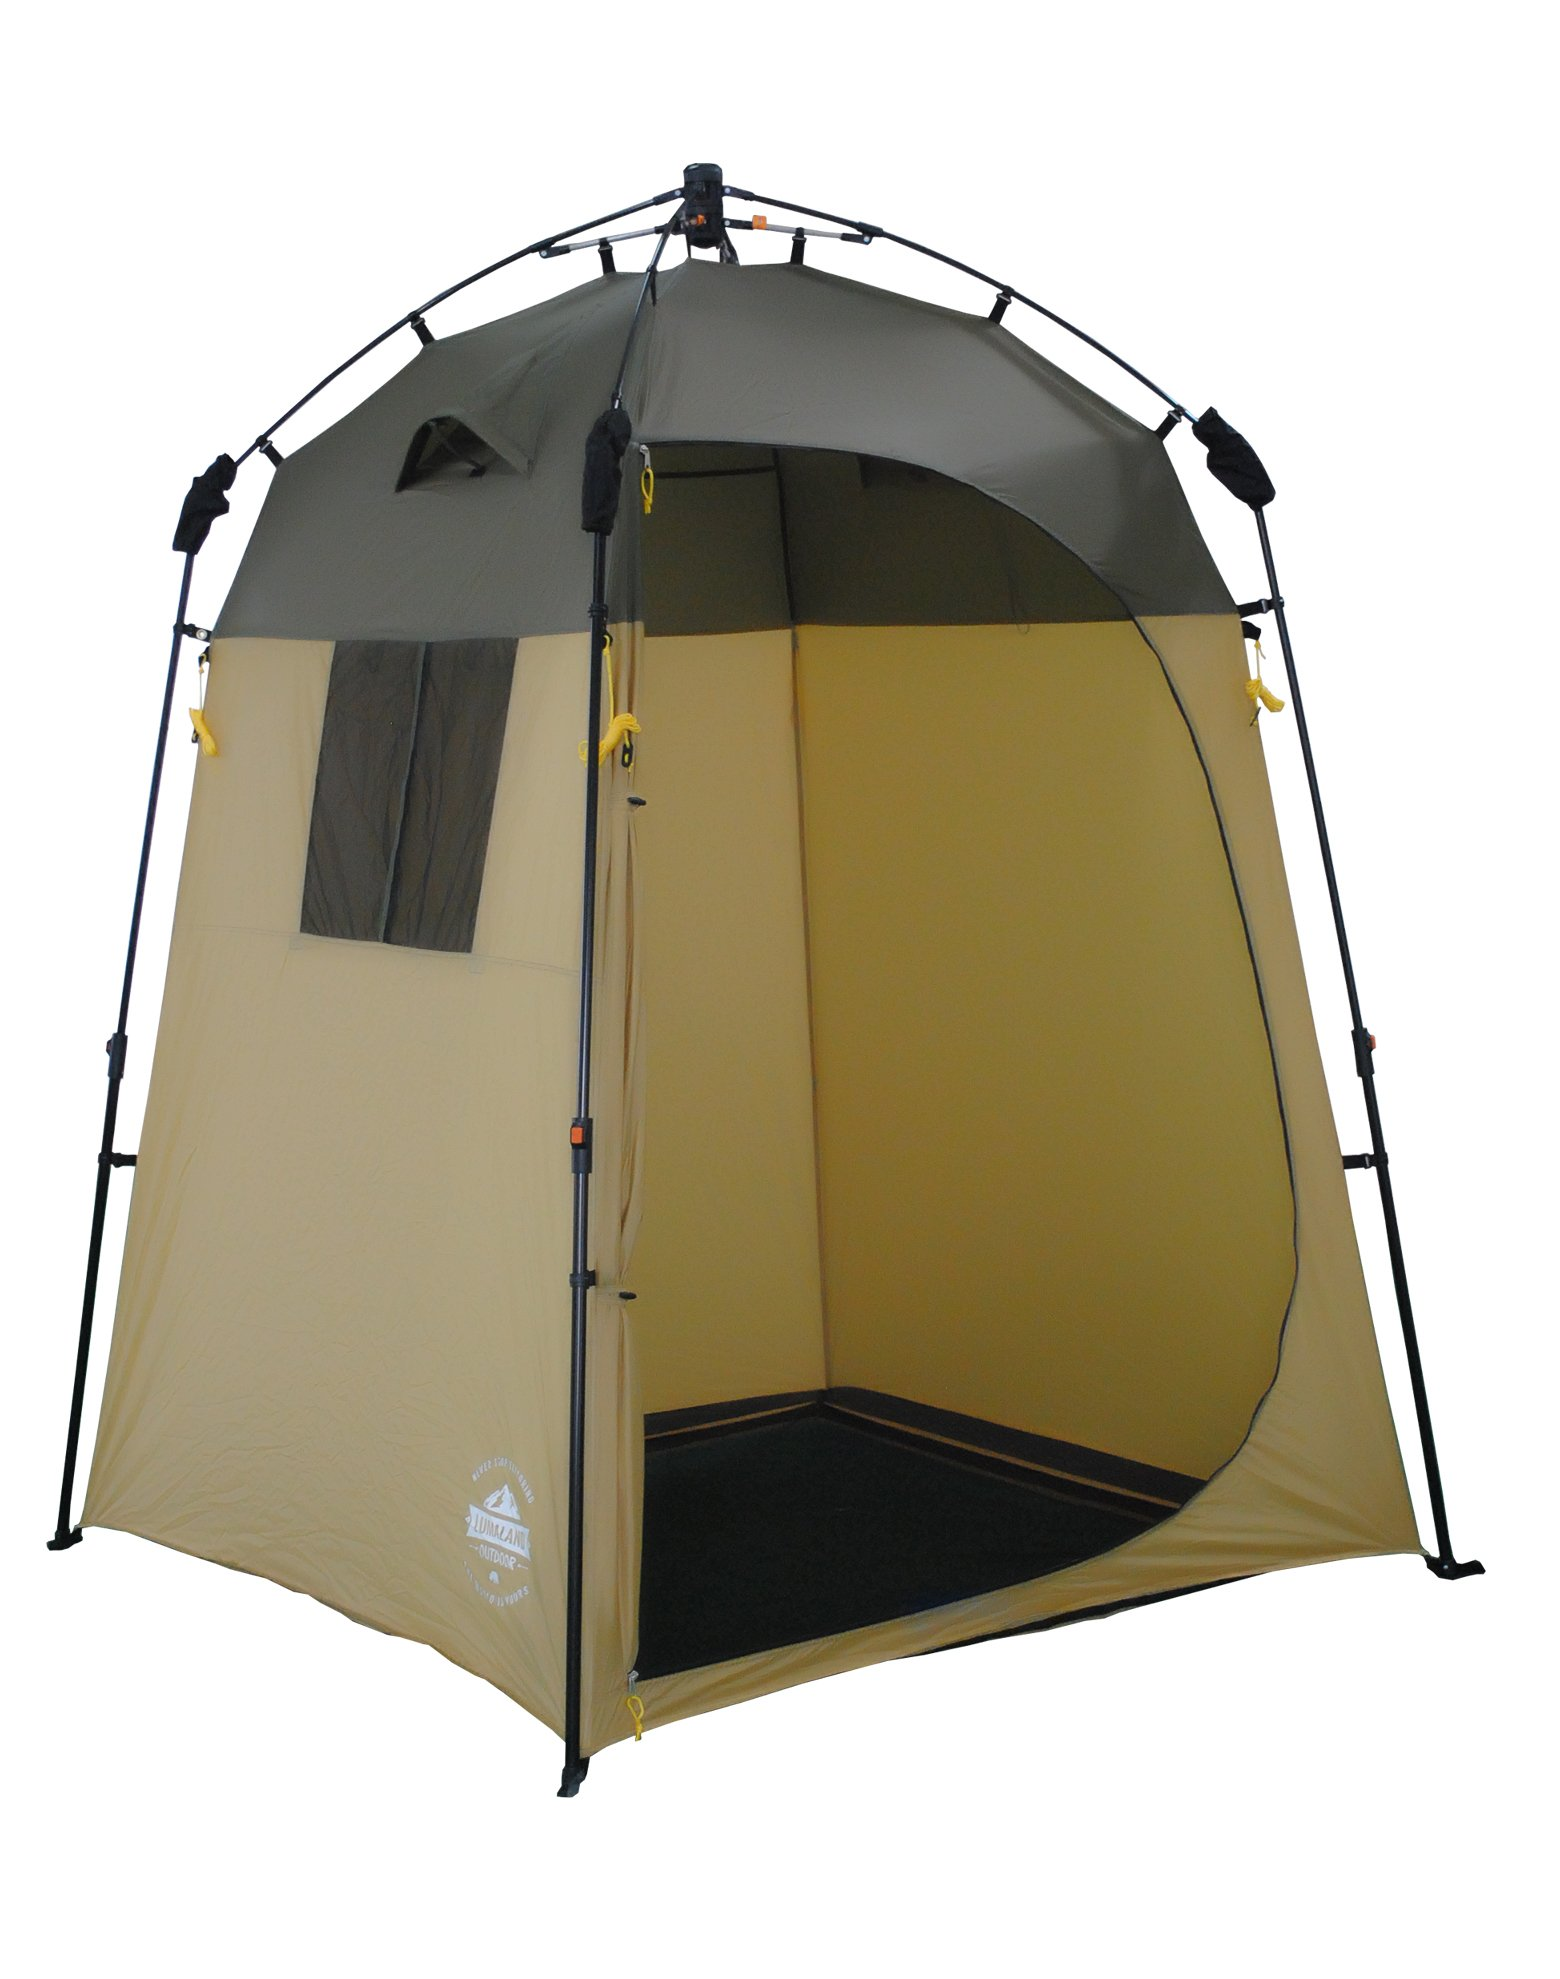 Lumaland Outdoor Pop Up Shower Tent Dressing Tent Privacy Toilet Tent Standing Height 2.05 m Changing Tent Shelter Sunshade Camping 155x155x220 cm